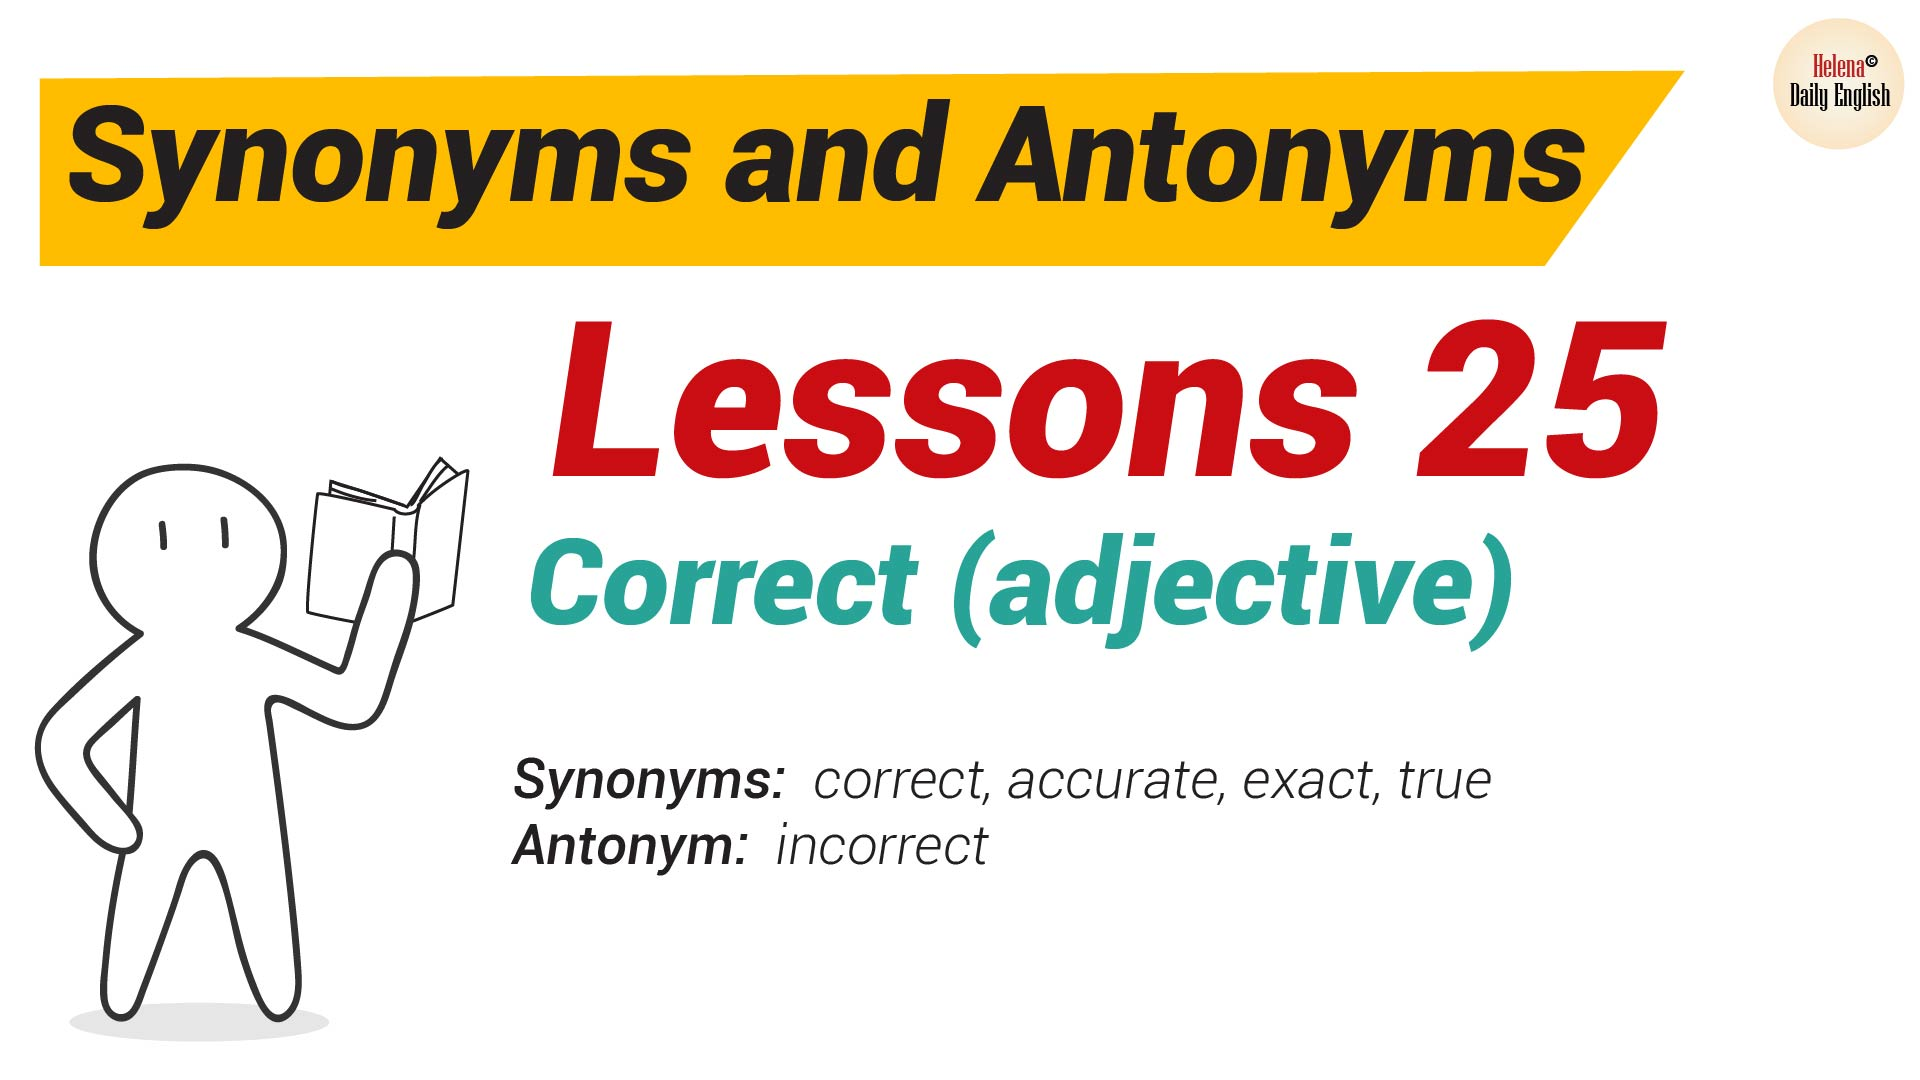 synonyms and antonyms dictionary lesson 25 correct adjective